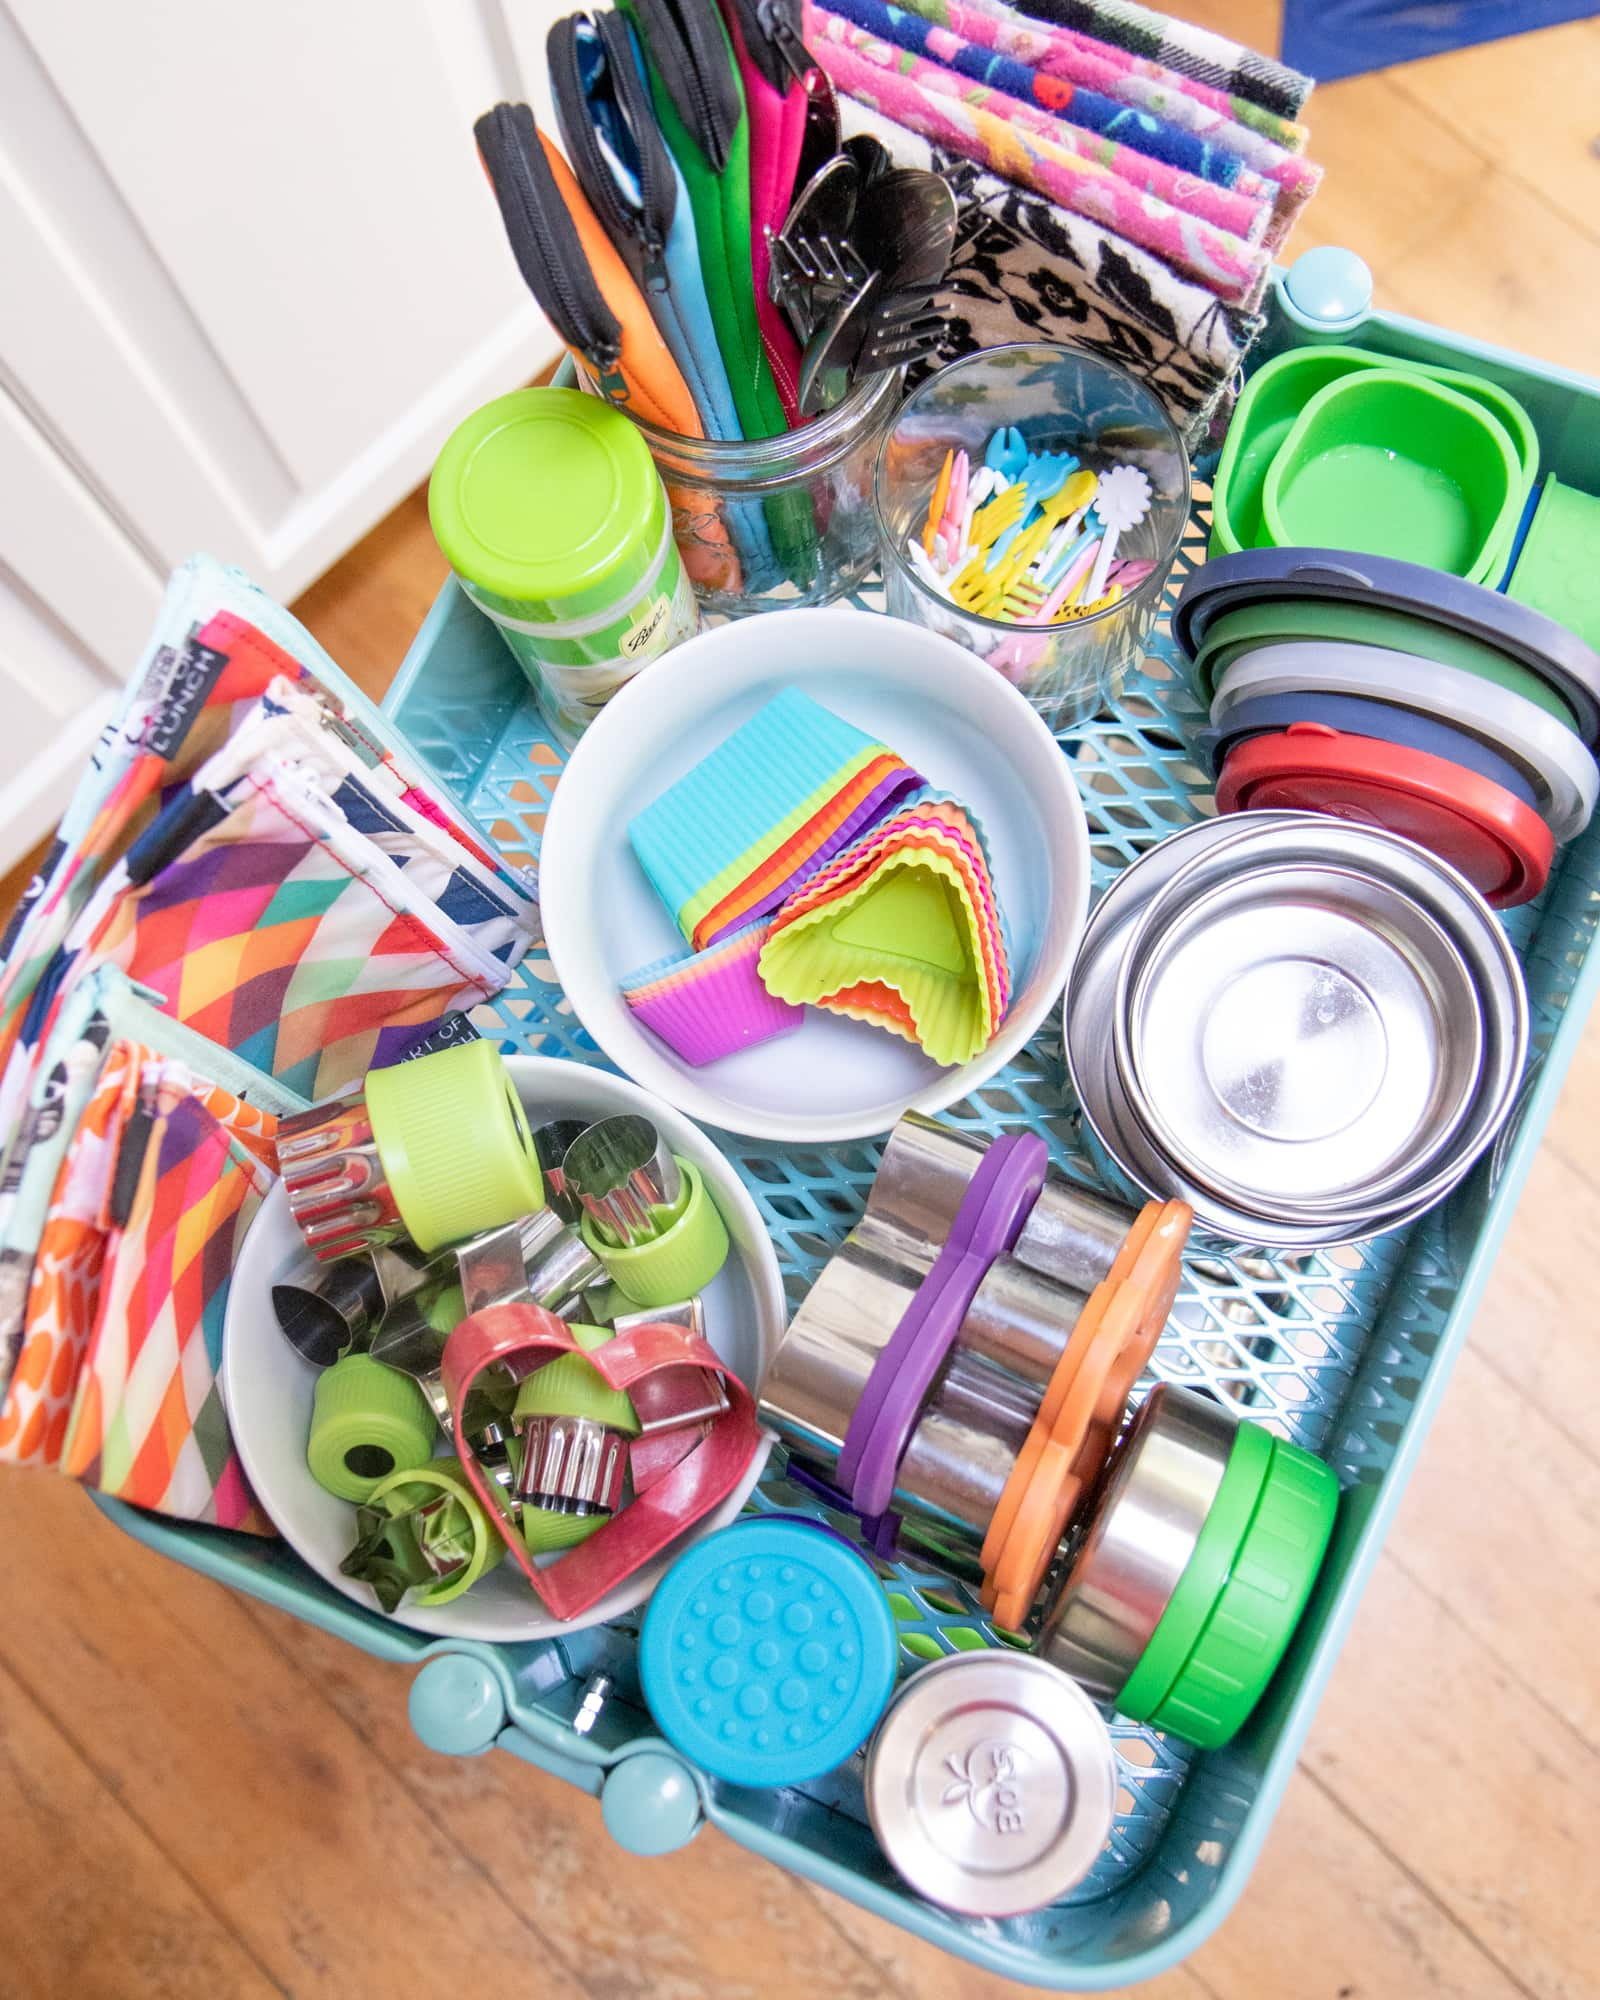 Shelf of a utility cart holding small containers and accessories for zero-waste lunch packing.